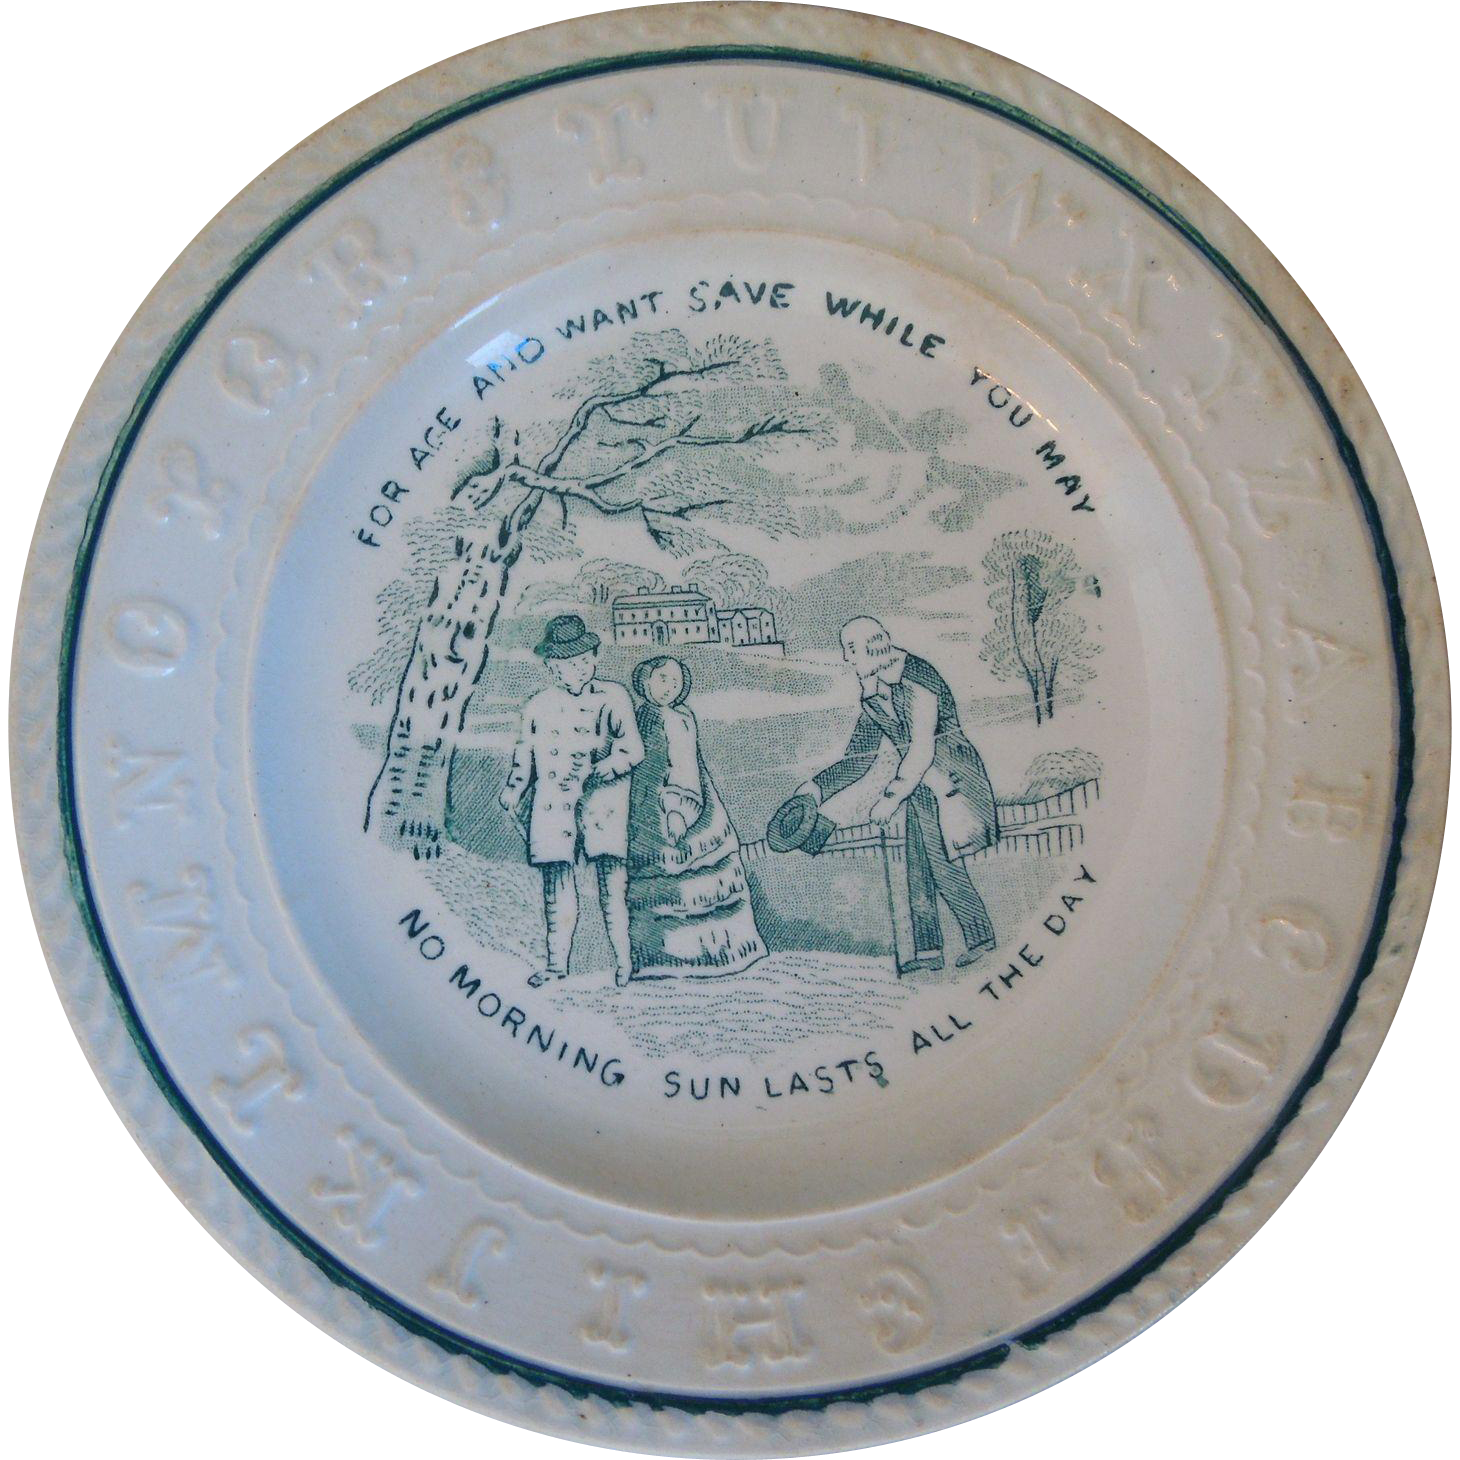 """19th Century Early English Staffordshire Child's ABC Plate With Verse, """"For Age And Want Save While You May No Morning Sun Lasts All Day"""""""